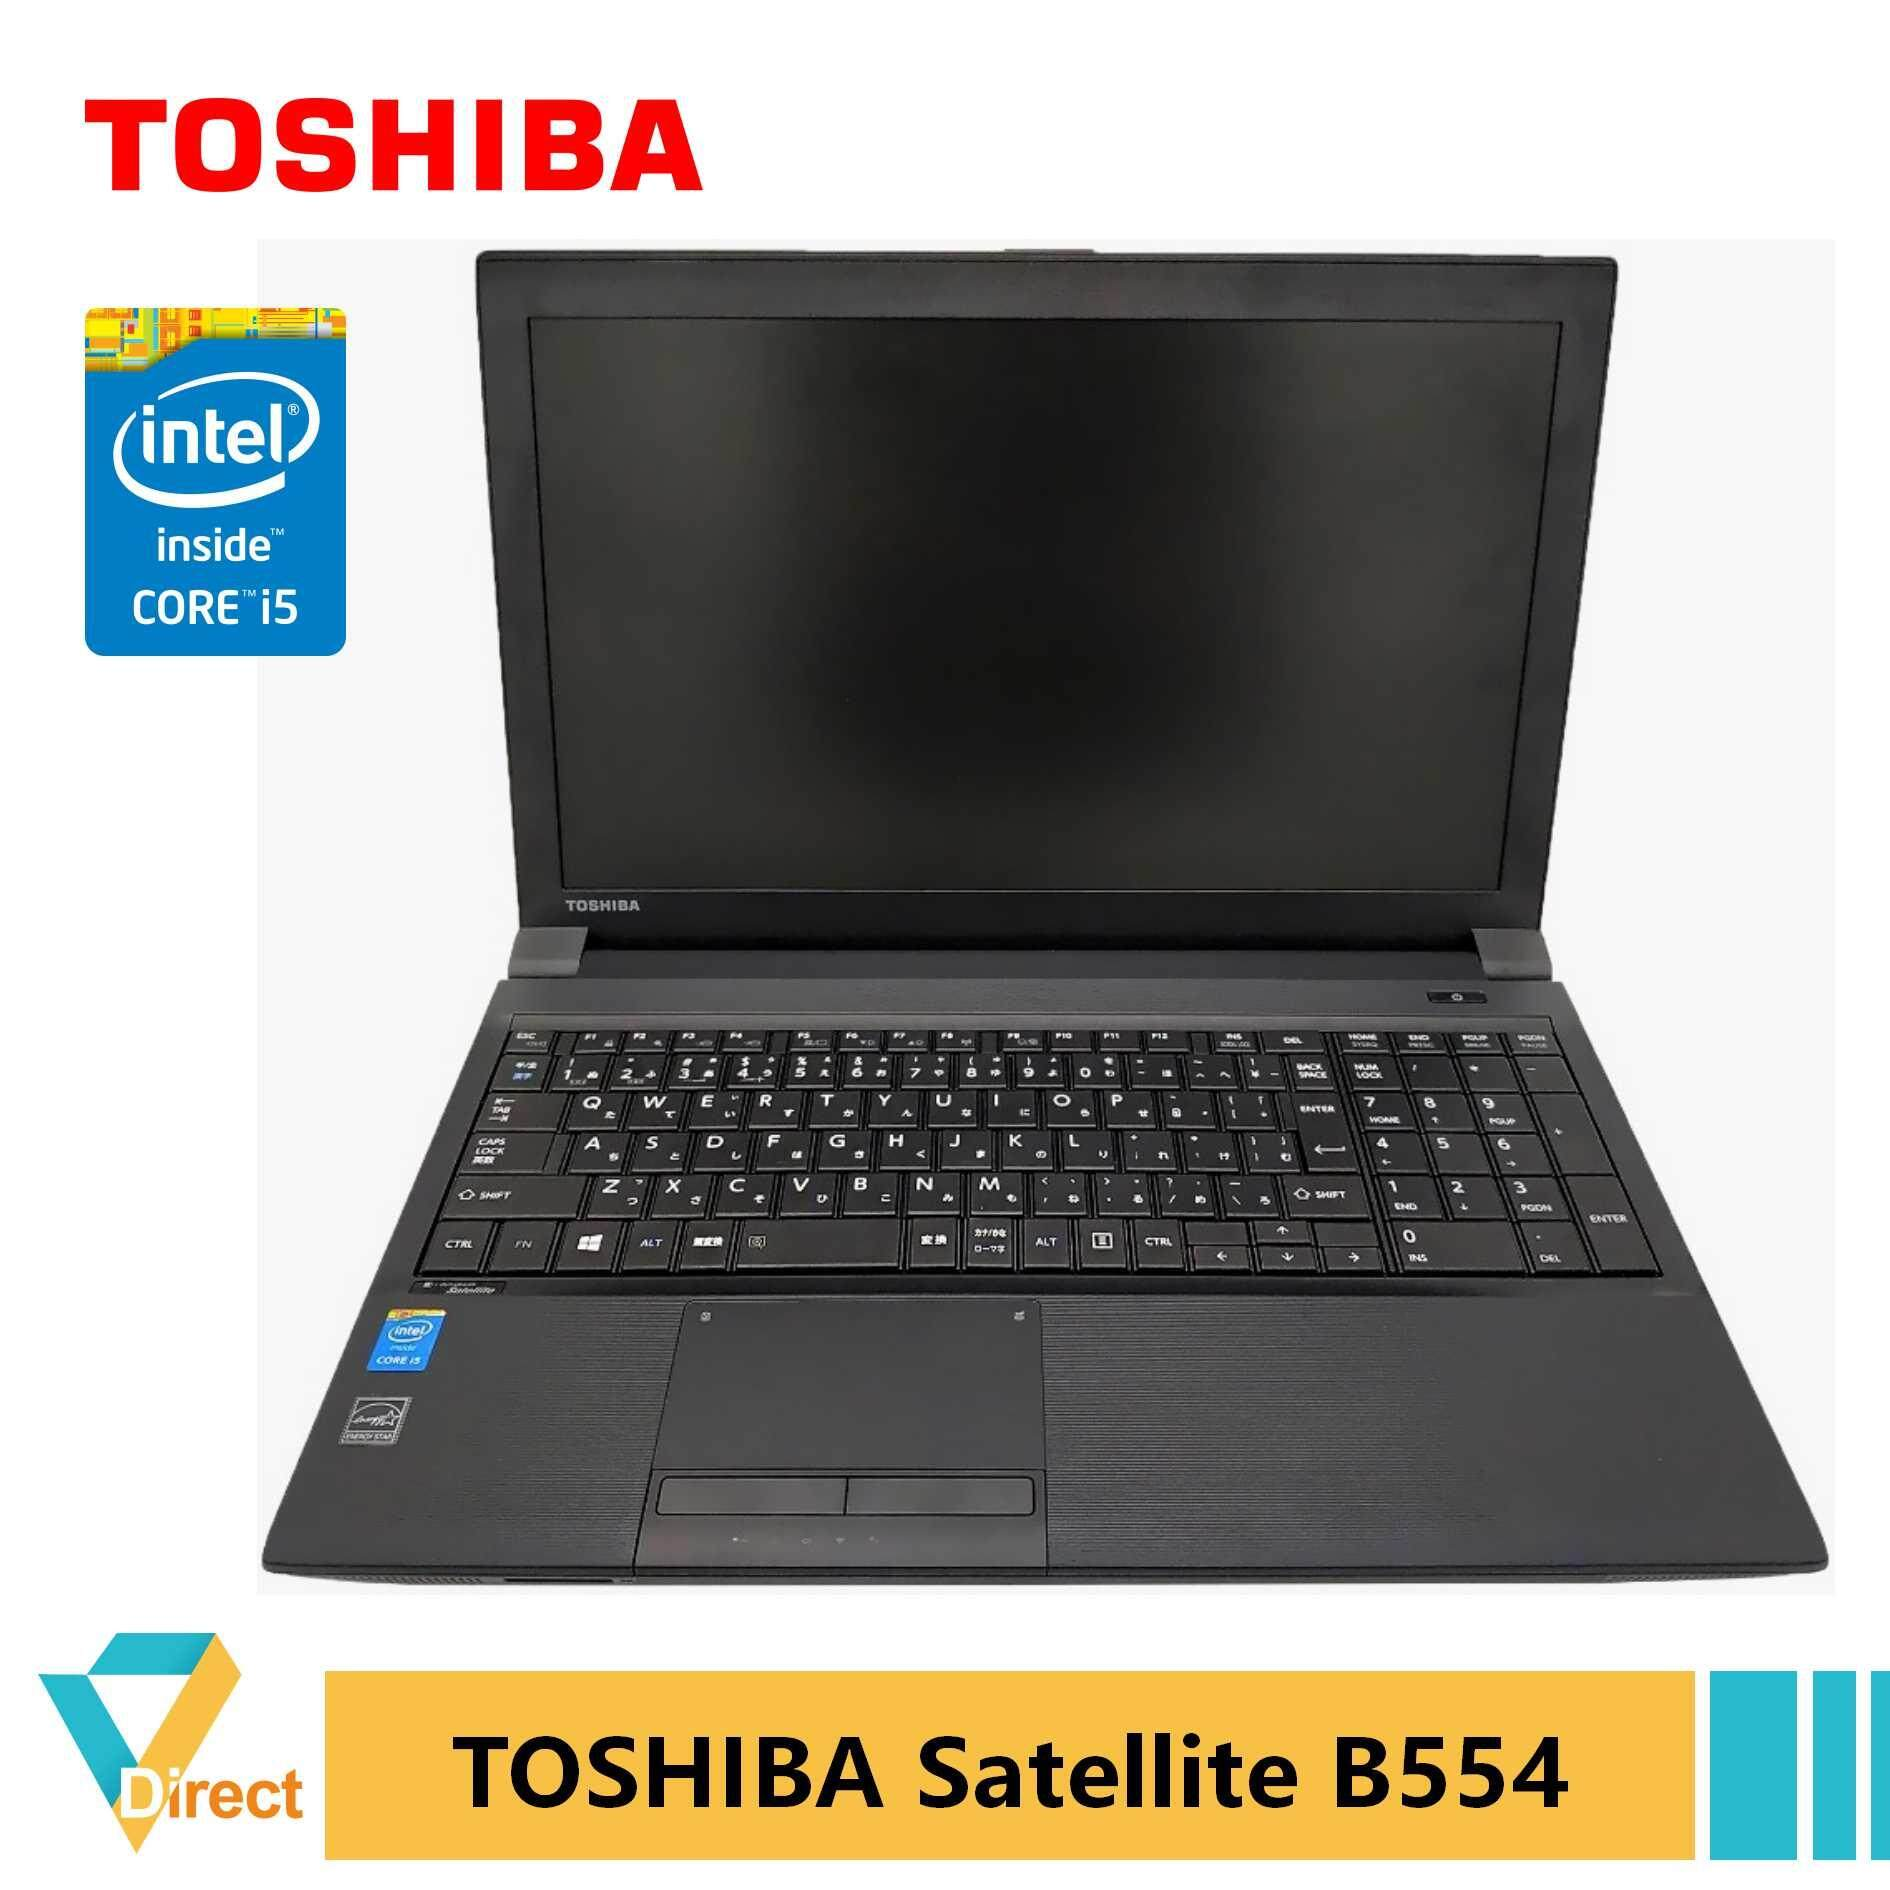 JDM Gen 4 Core i5 Toshiba Satellite B554 laptop PC 8GB 480GB SSD also 4GB 320GB 500GB HDD 240GB Malaysia